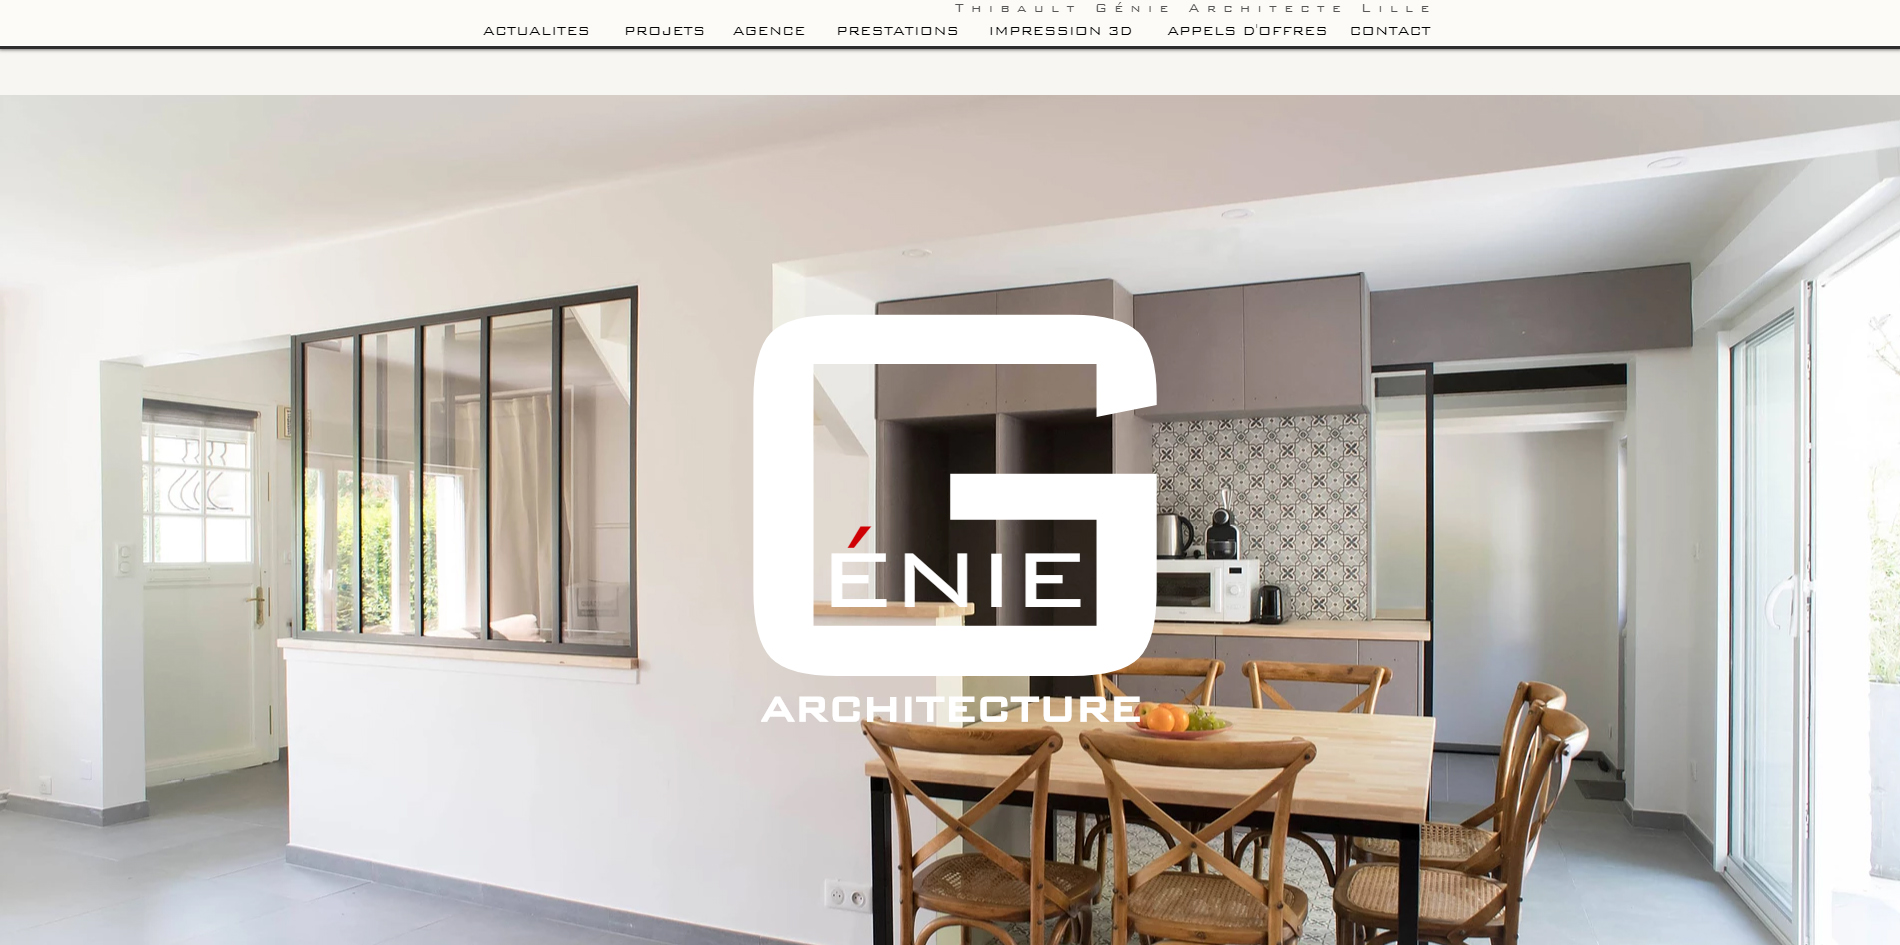 Cabinet d architecture lille - Cabinet thierry location ...